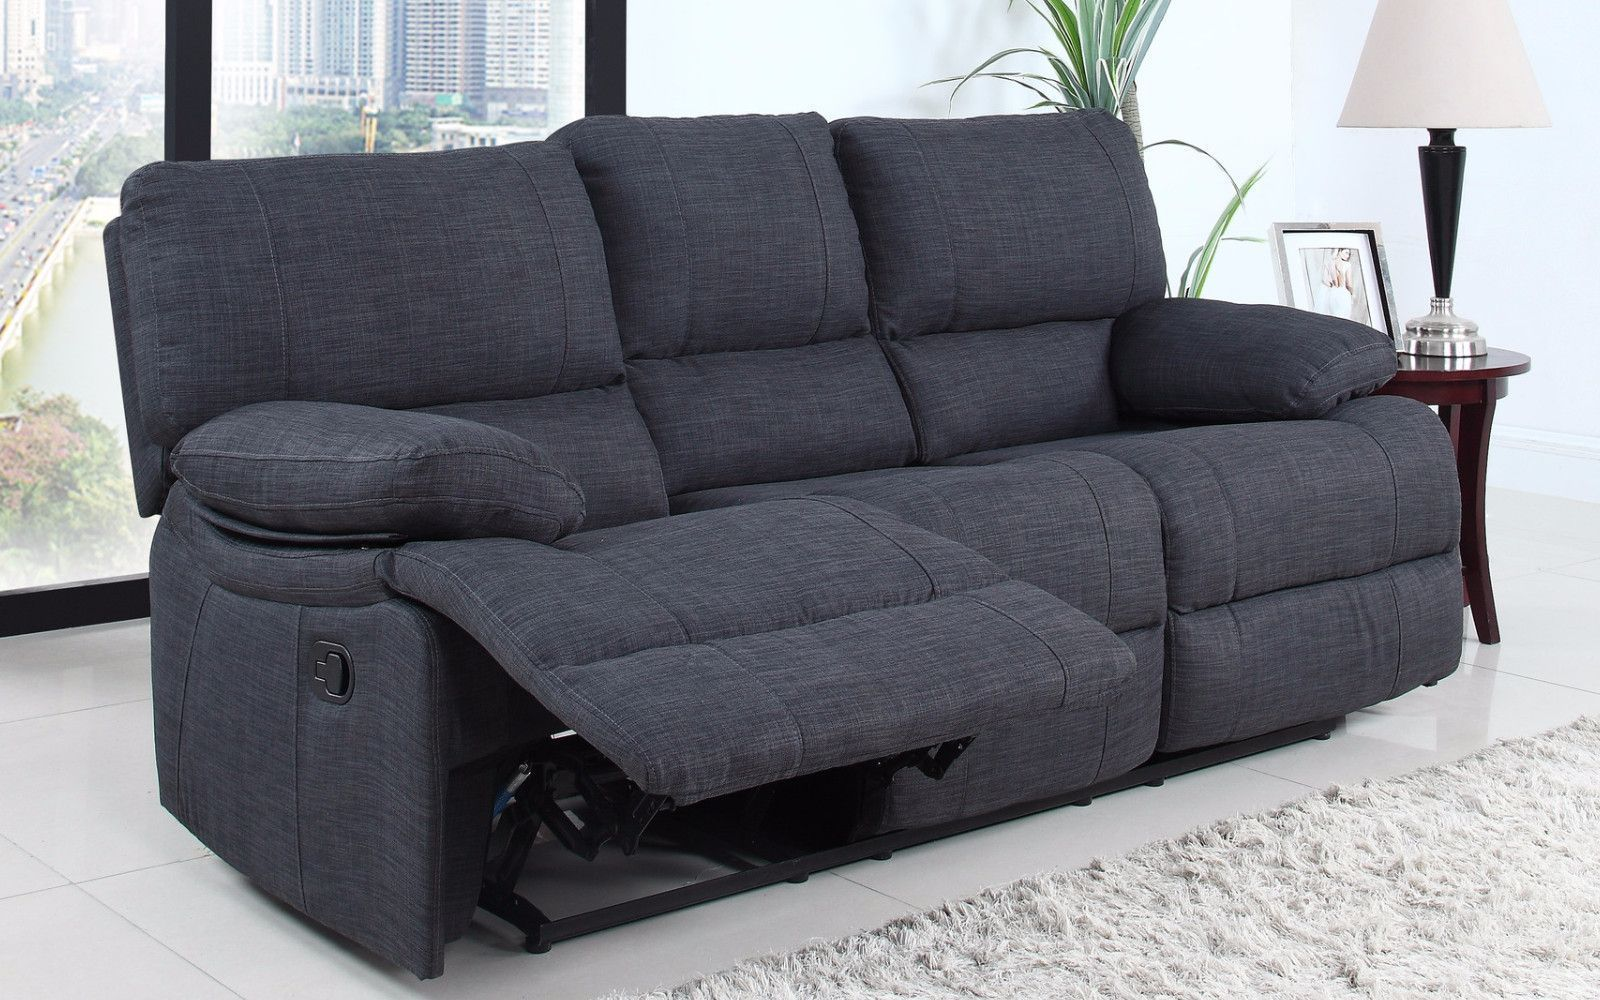 Classic Style Oversize And Overstuffed Reclining Sofa Featuring Soft Linen Fabric Upholstery With Overstuffed Back Rest And Reclining Sofa Recliner Couch Sofa